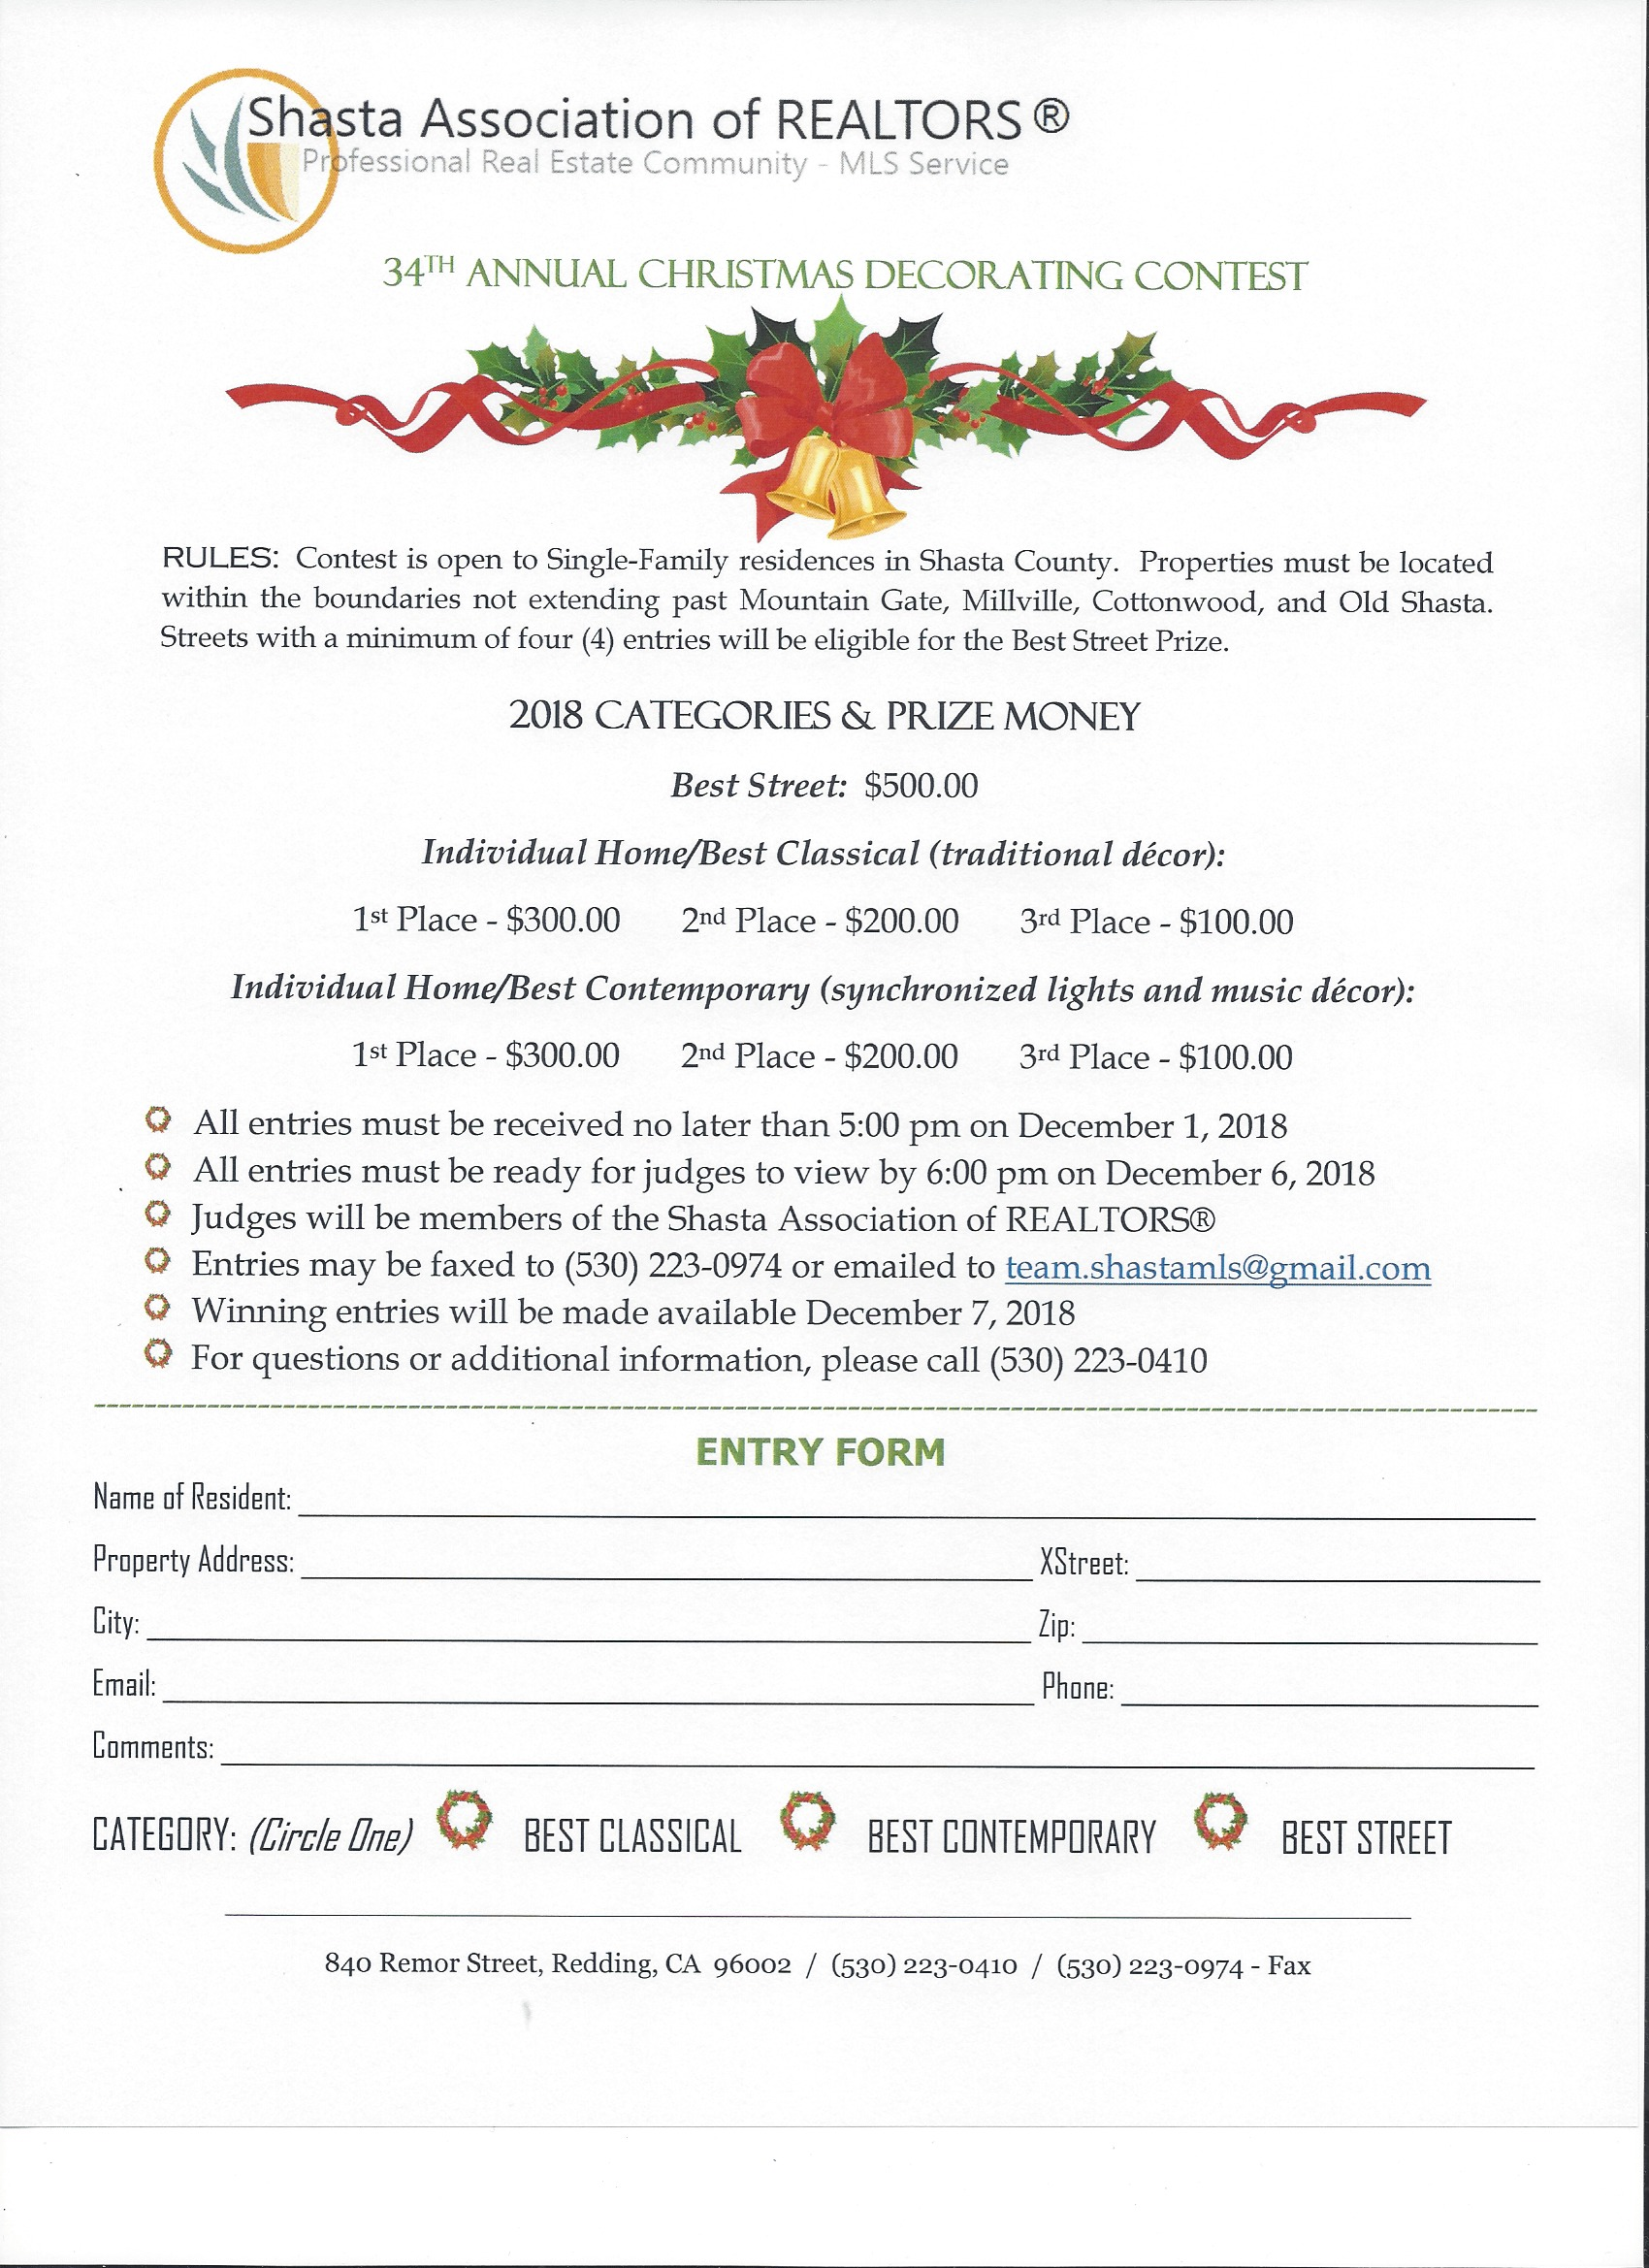 18-10-08;2018 Christmas Decorating Entry Form.jpg